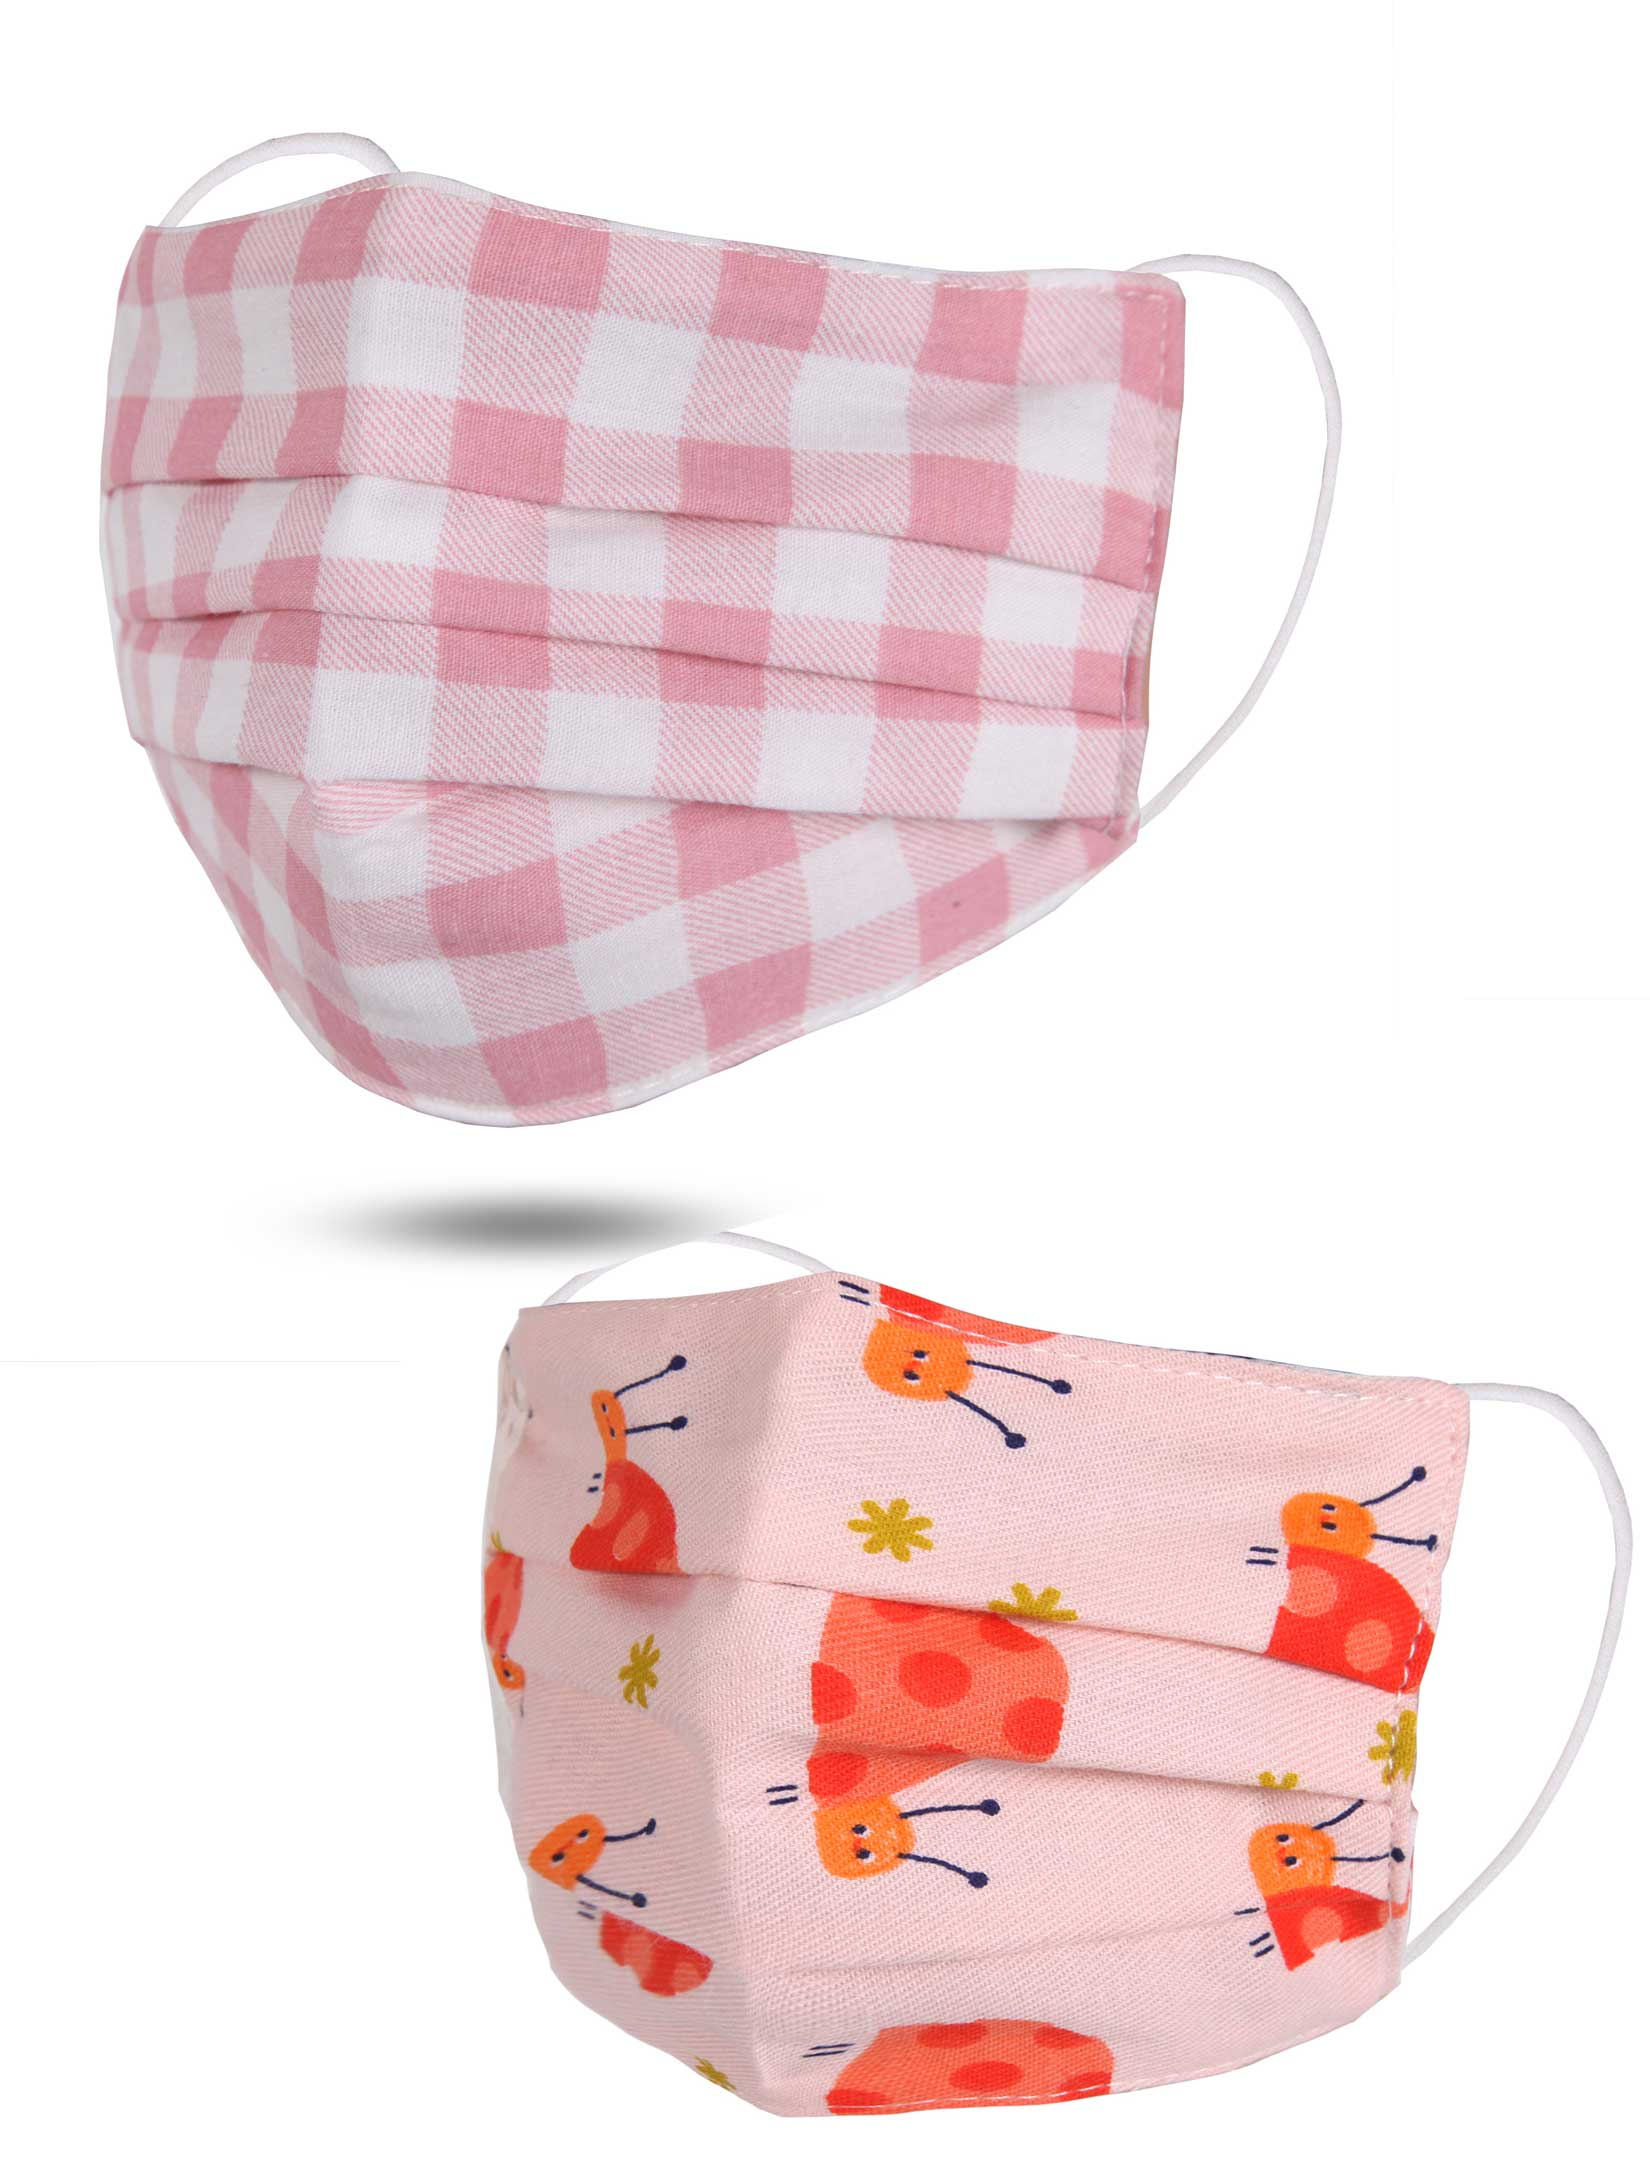 wholesale Protective Masks by Jessica - Child Size